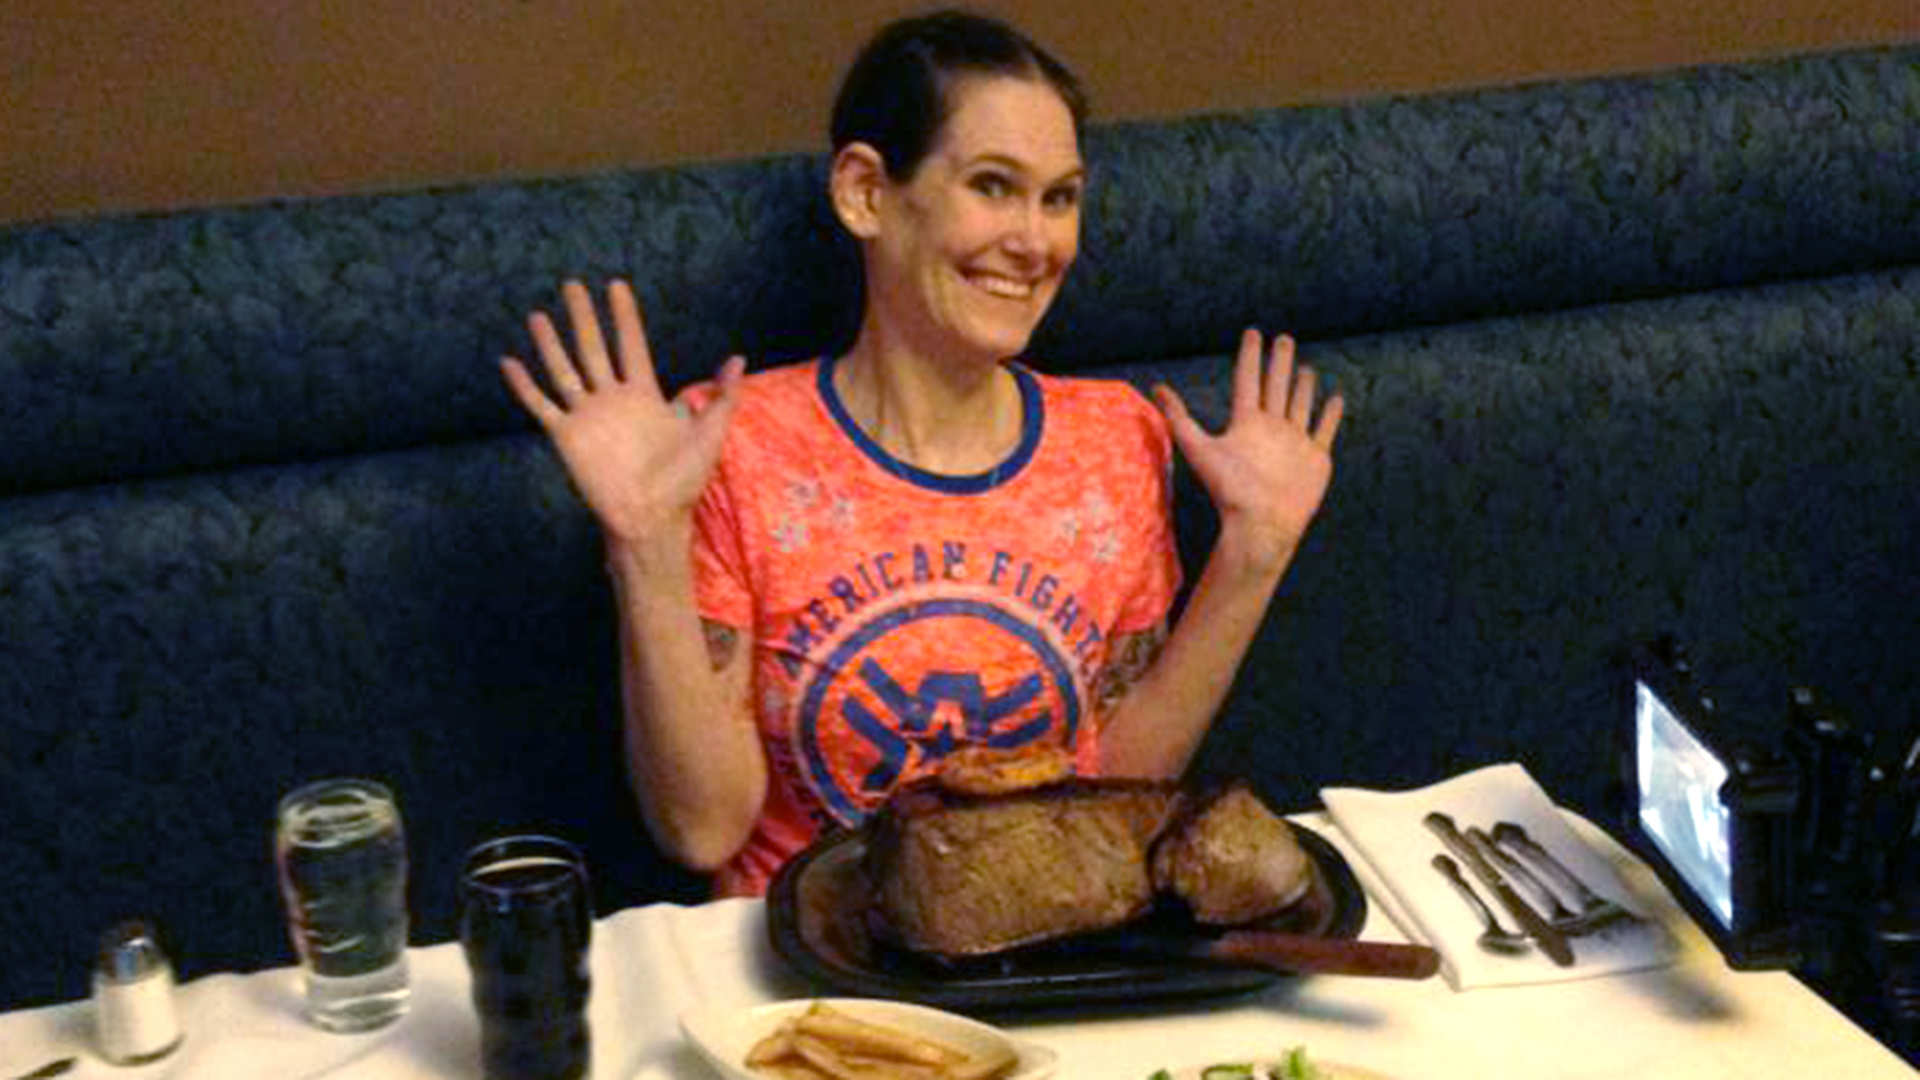 Mesmerizing Mom Downs 72 Ounce Steak In Under 3 Minutes